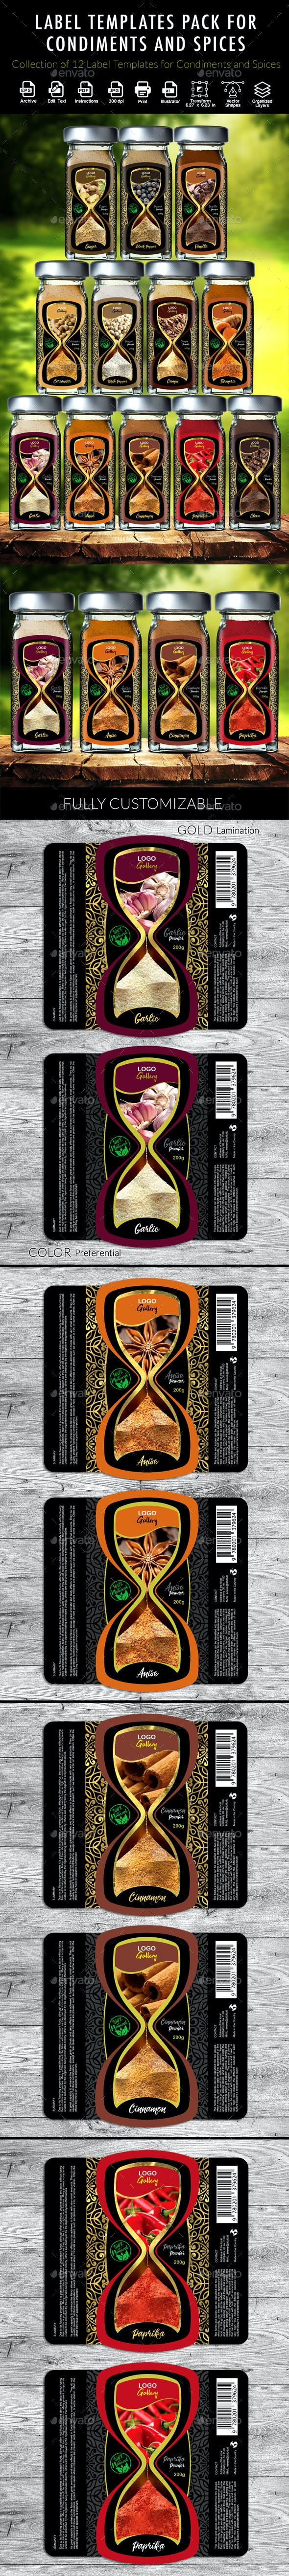 Label Templates for Condiments and Spices Packaging and Flasks - Packaging Print Templates